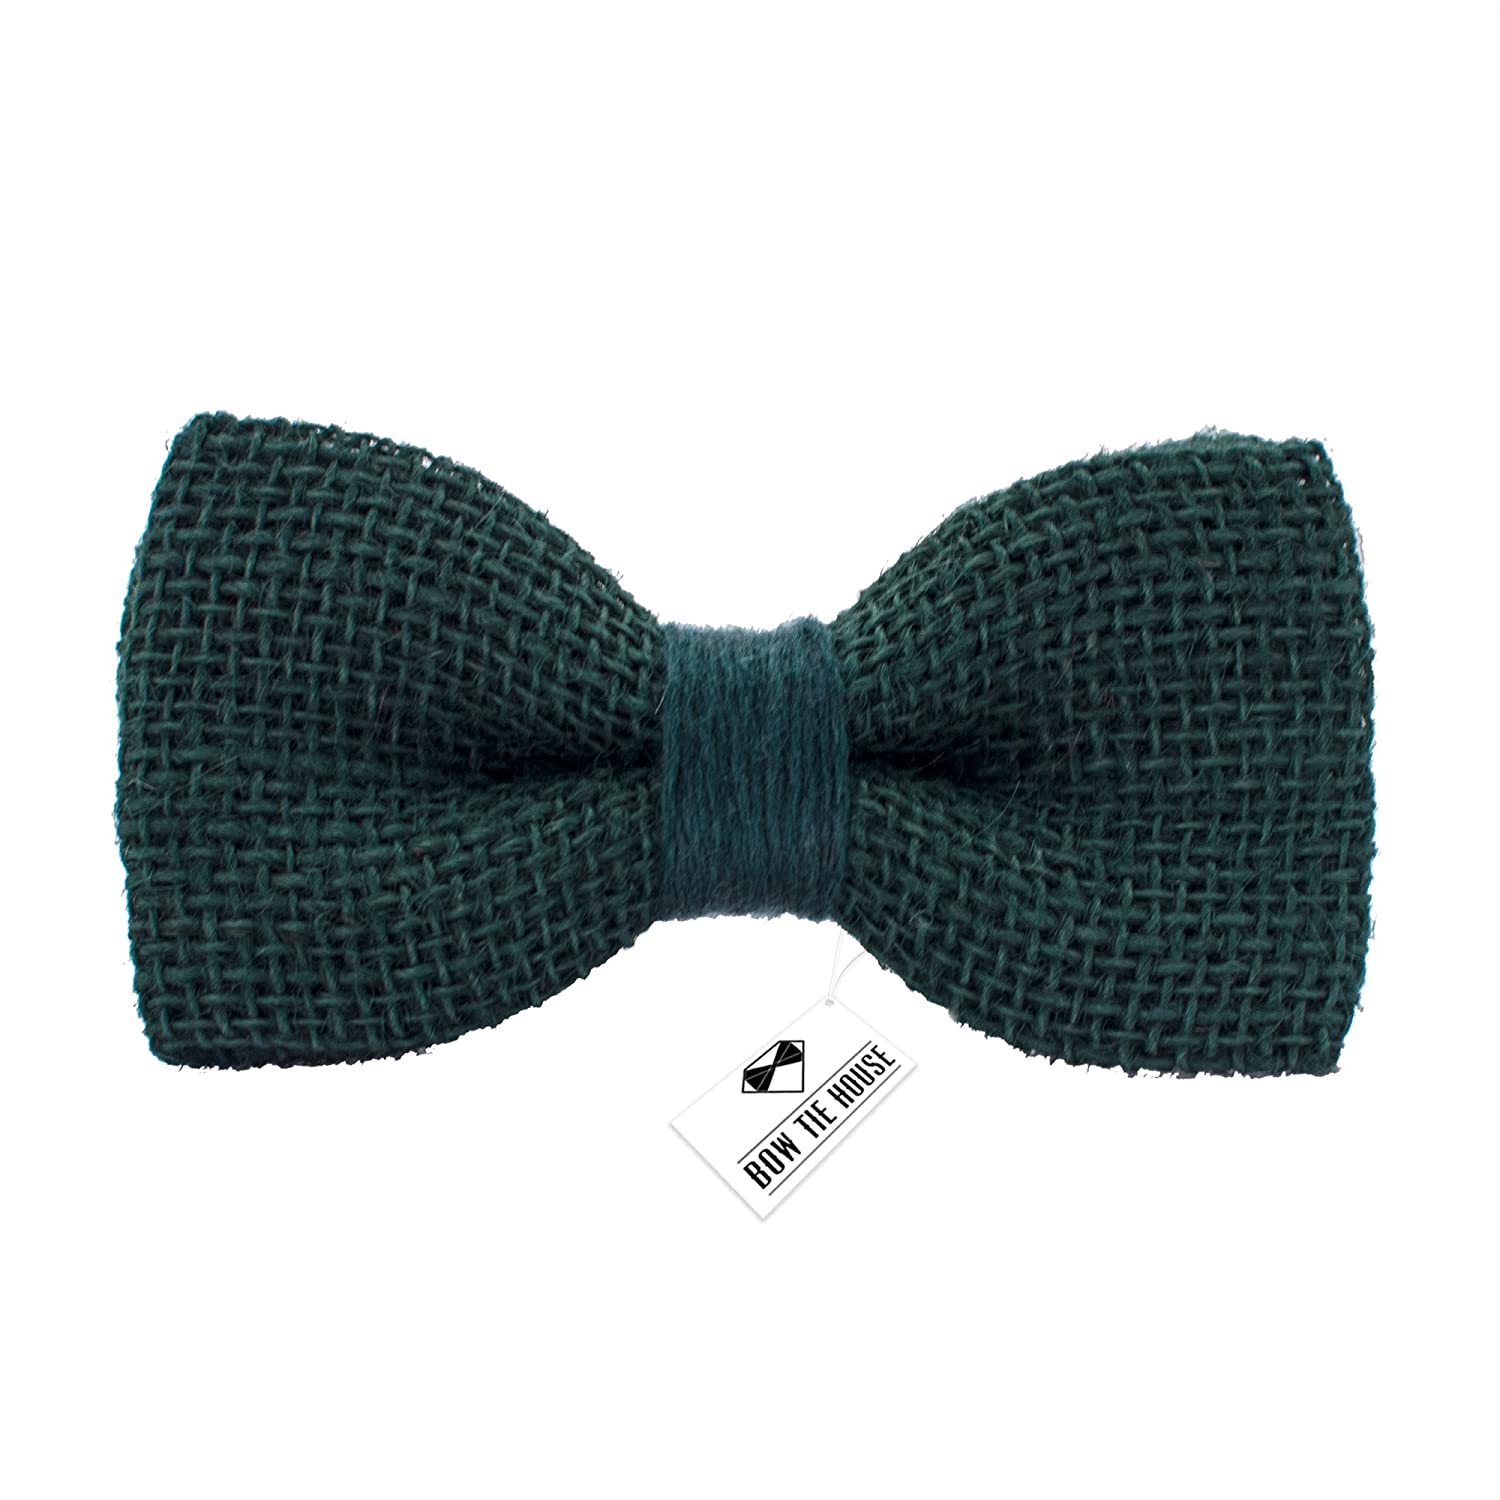 Bow Tie House Rustic Pre-Tied Bow Tie in 100/% Burlap Hessian Small, Dark Red